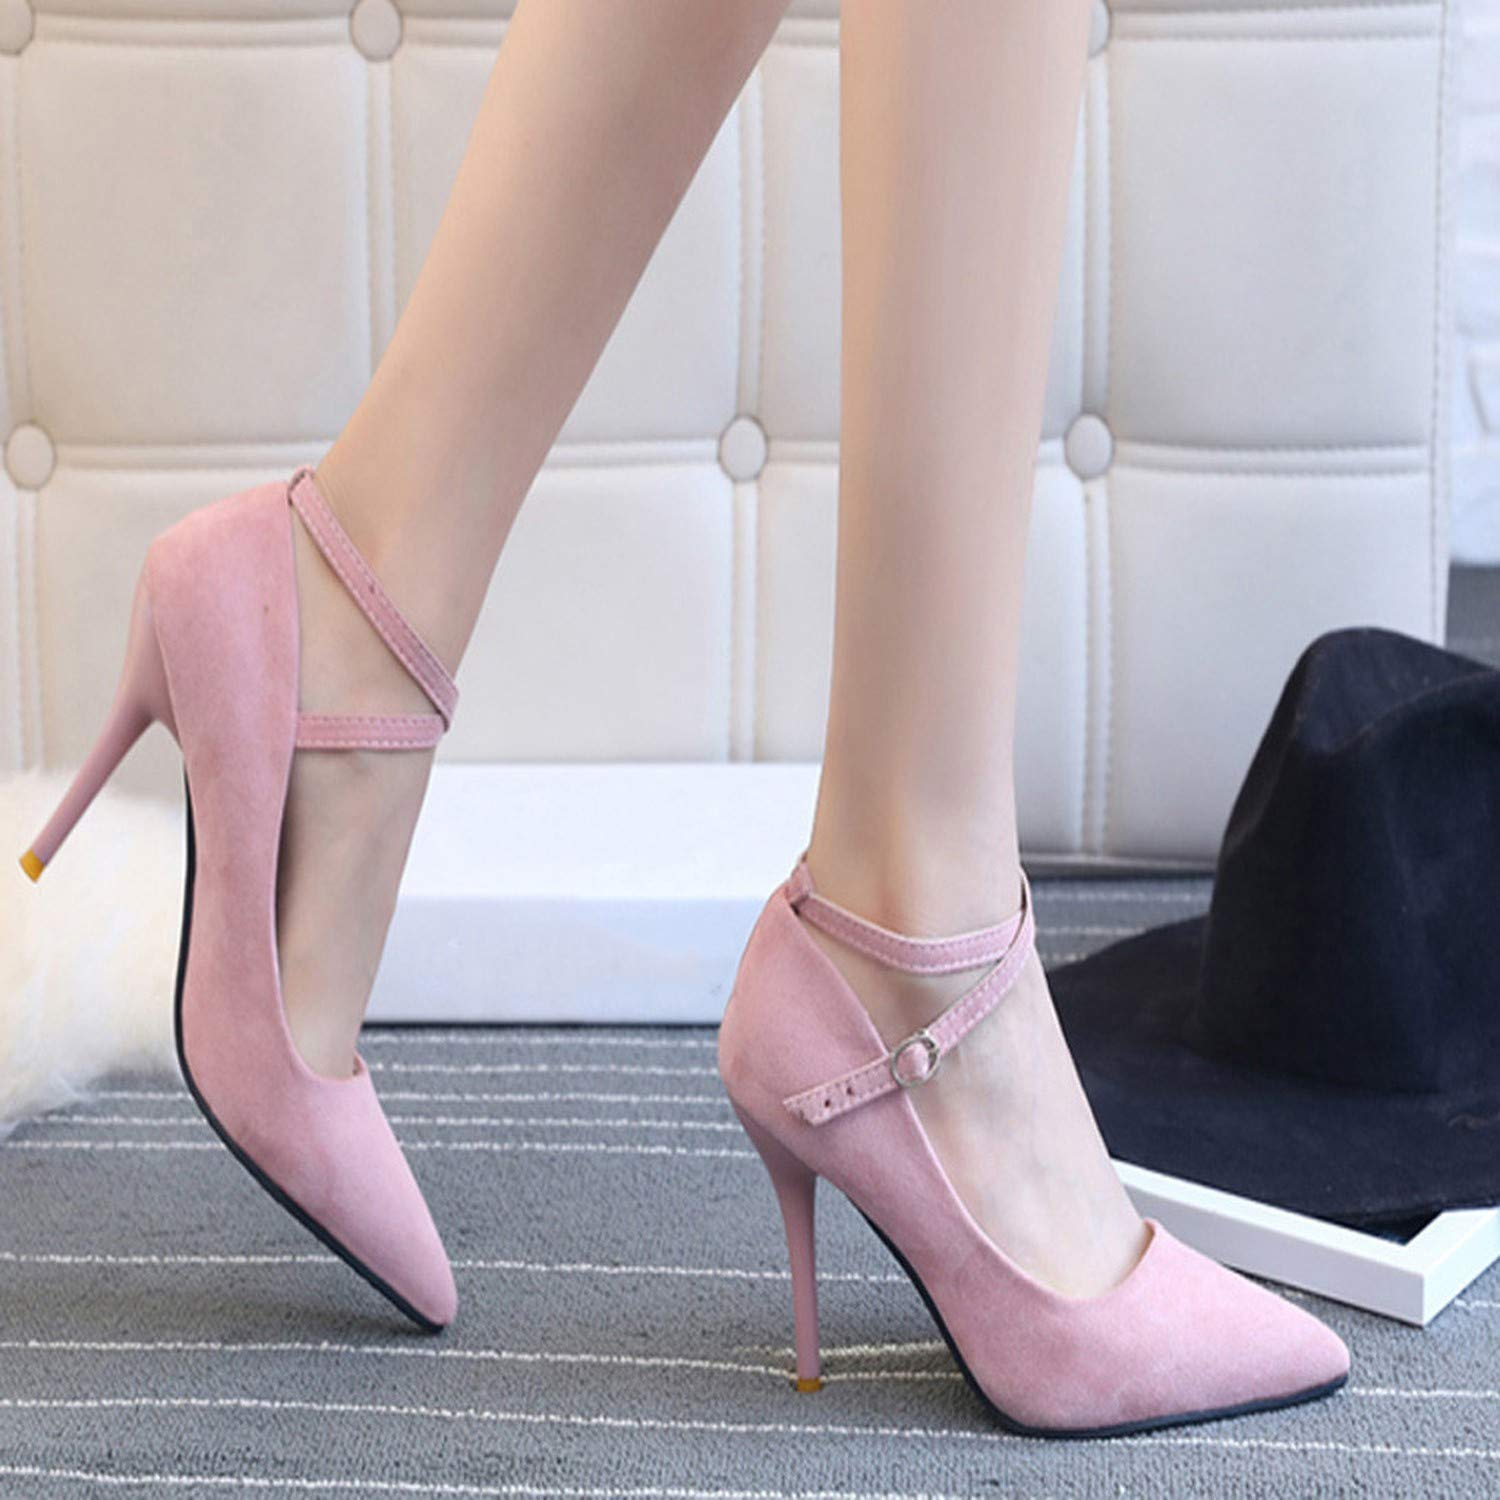 SATOSHI DUN High Heel Shoes Plus Size Female Ankle Strap High Heelsheel Shoes high #1240,A,5.5,